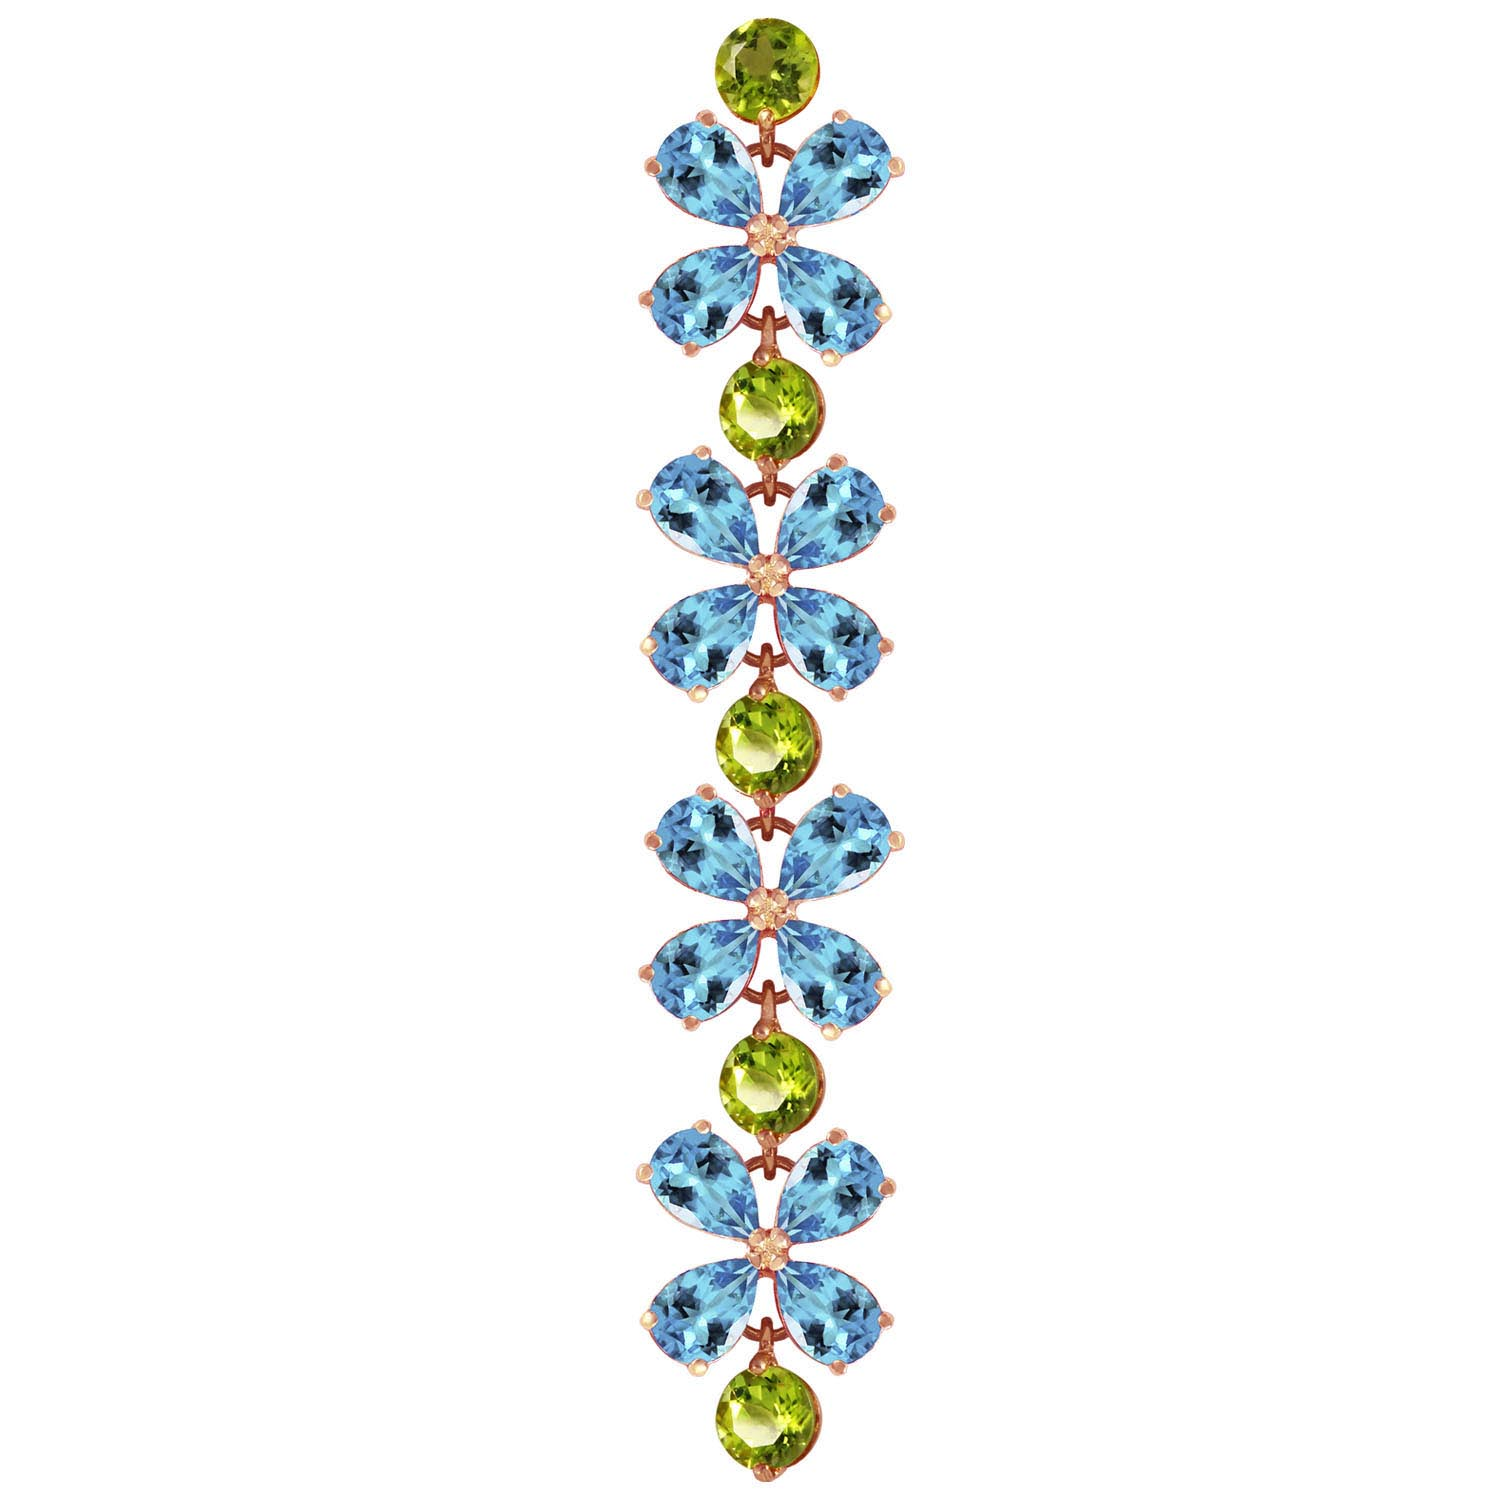 Blue Topaz and Peridot Blossom Bracelet 20.7ctw in 14K Rose Gold